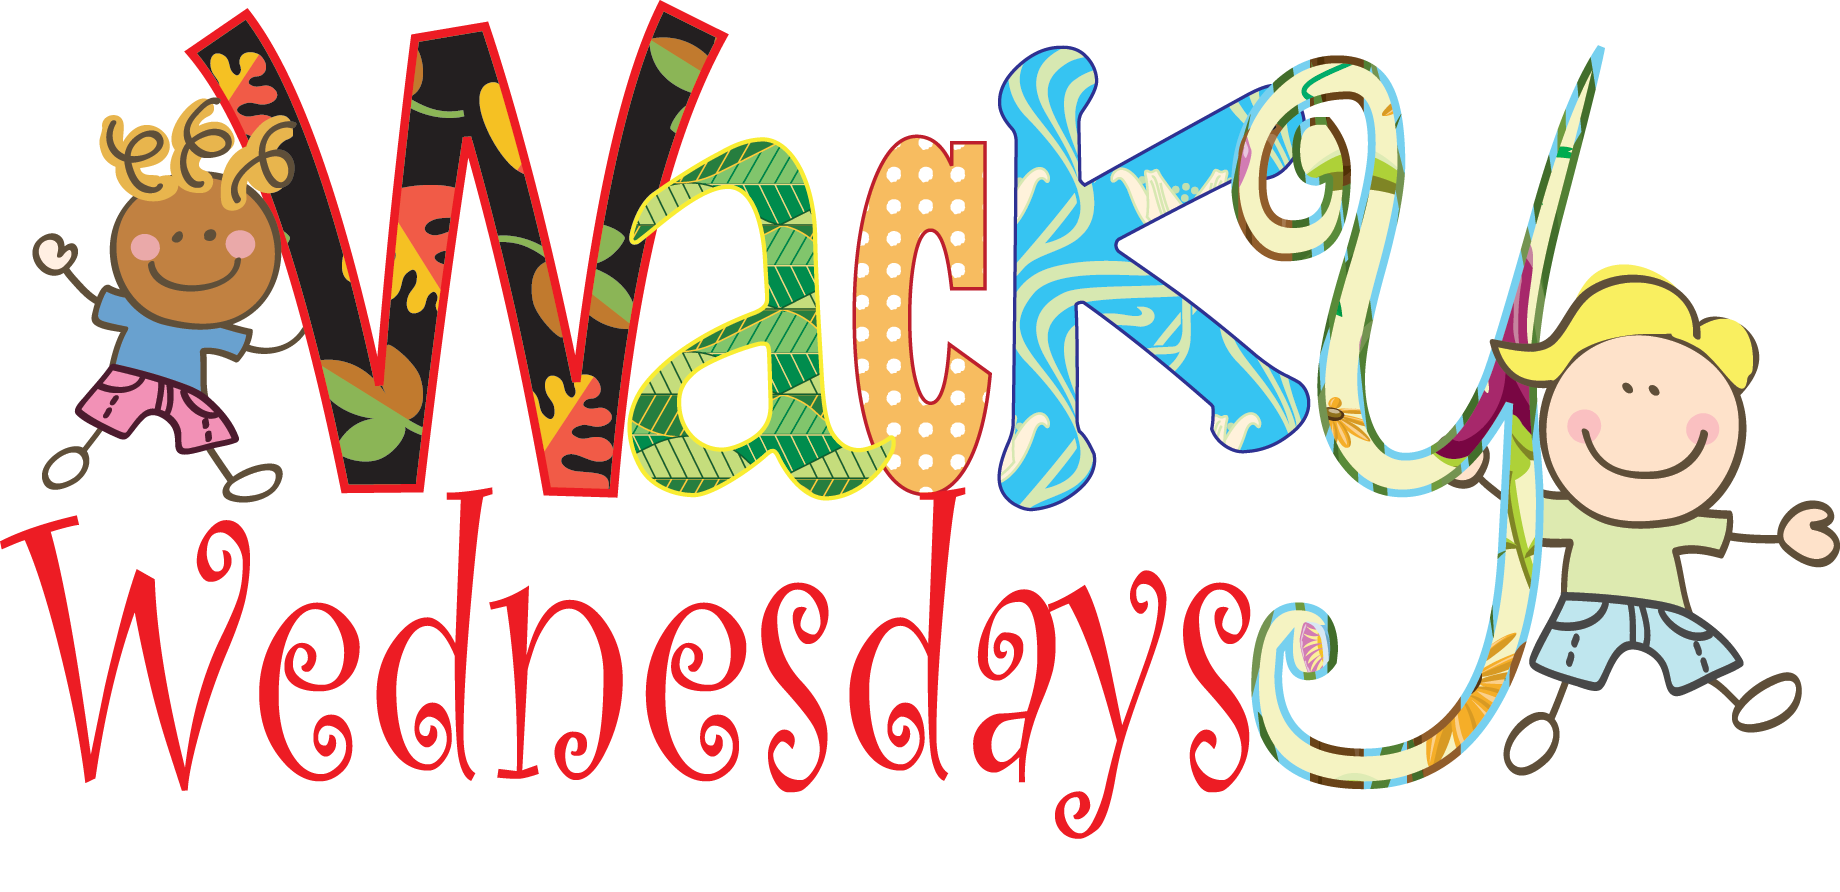 Wednesday clipart ash wednesday. Wacky at getdrawings com